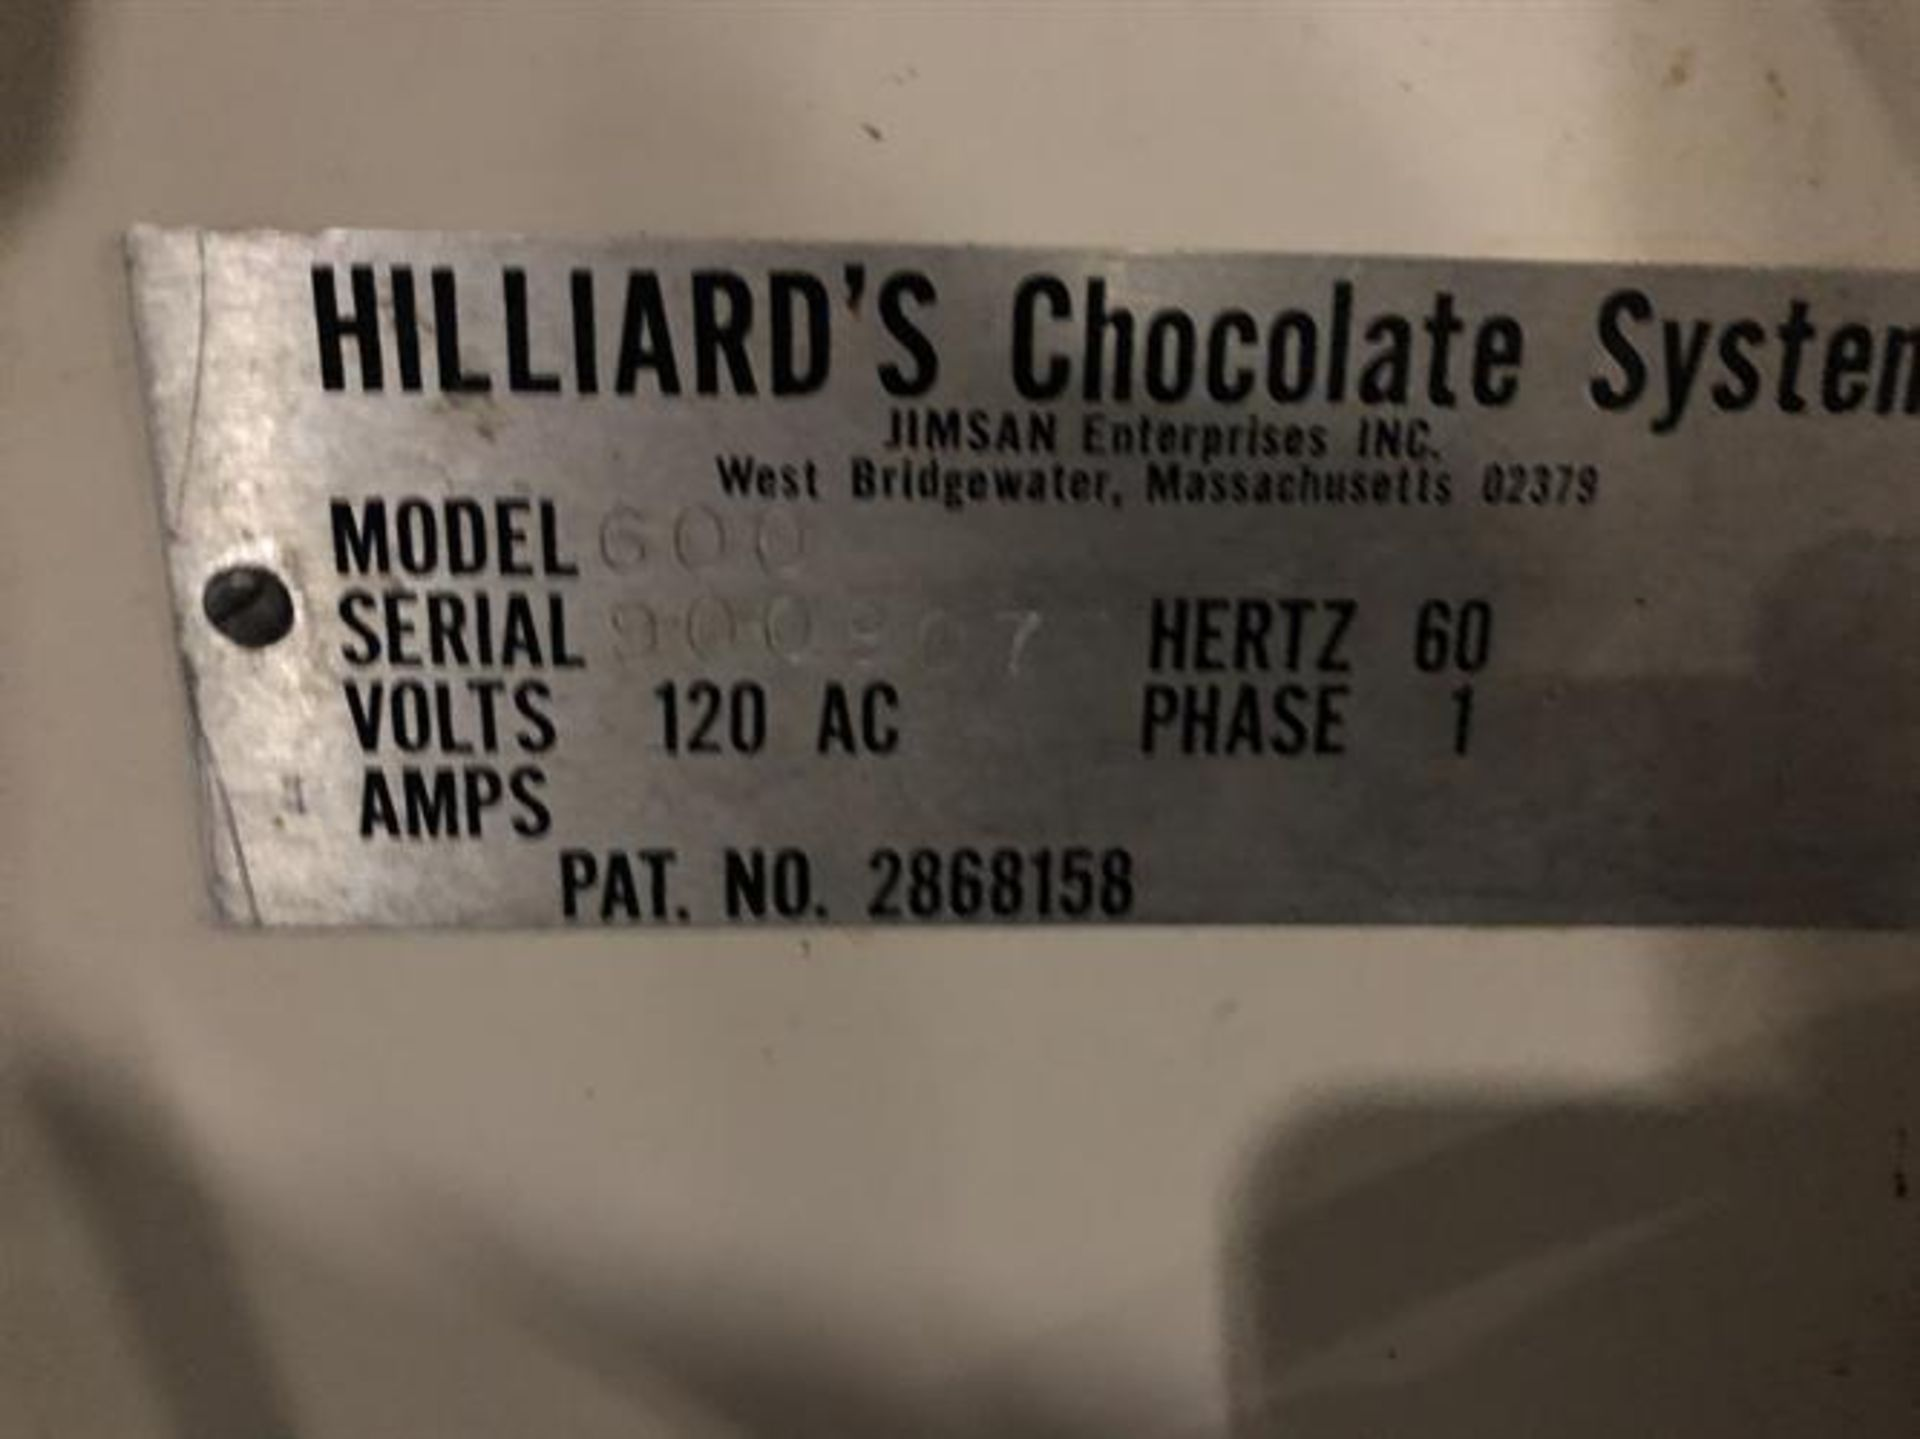 Hilliard 600lb/day Tempering Melter with Flood Mold Attachment - Electric heater and thermostat - - Image 4 of 6